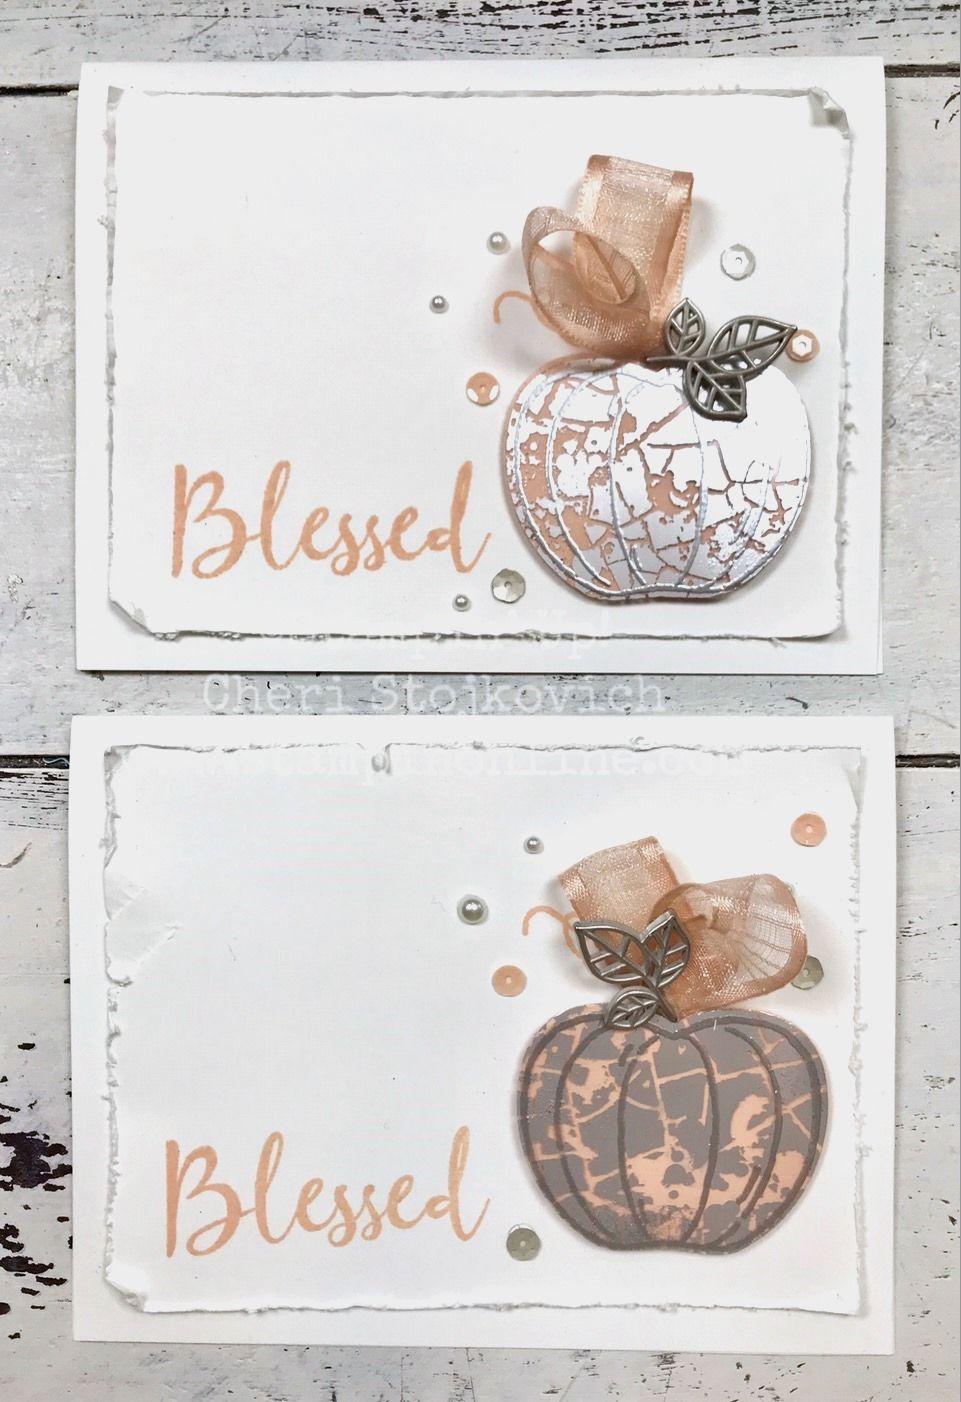 Mercury Glass Pumpkin Harvest Hellos Apple Builder Punch Stampin' Up! Holiday Catalog 2019